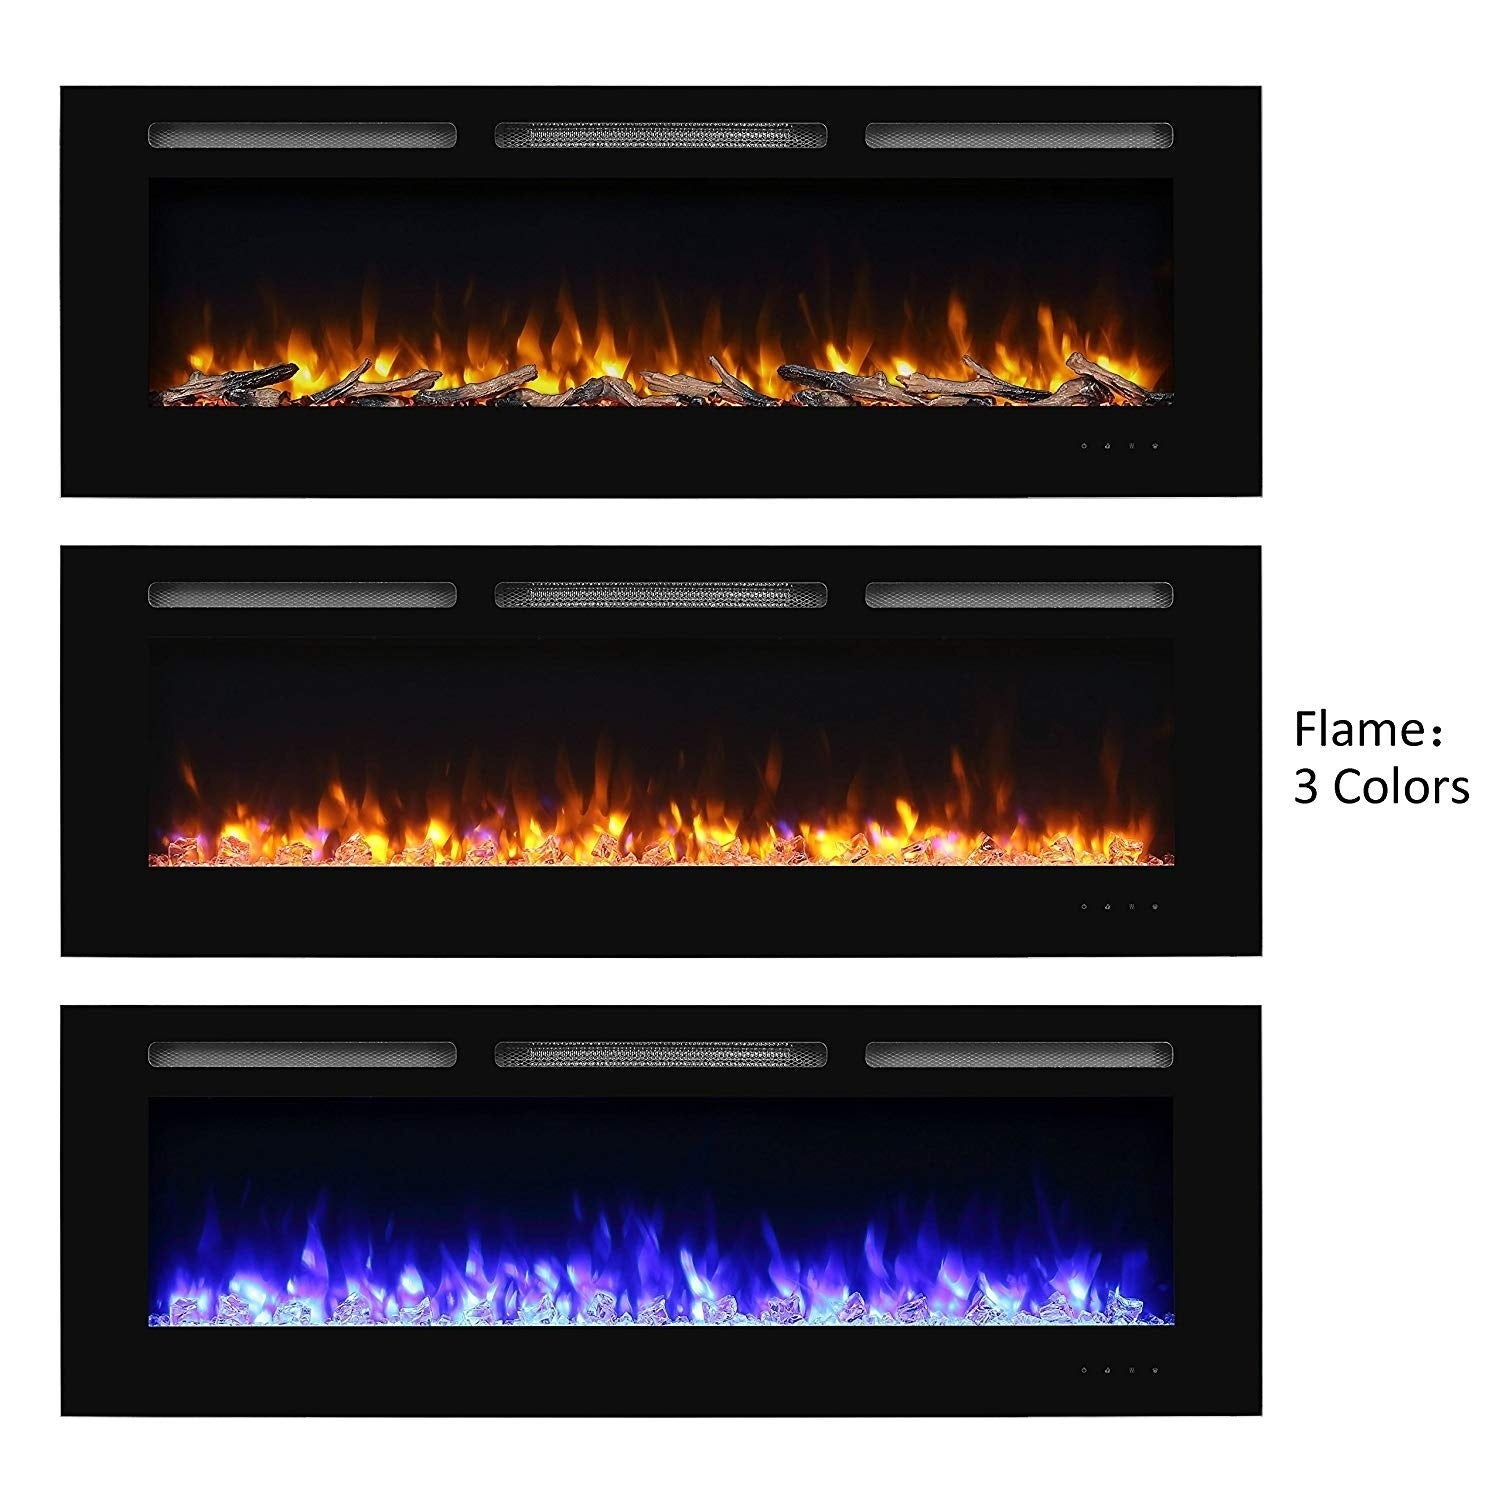 60 Alice In Wall Recessed Electric Fireplace 1500W Black df0ee8ee 4a99 494e ad5d e13a43e004a5